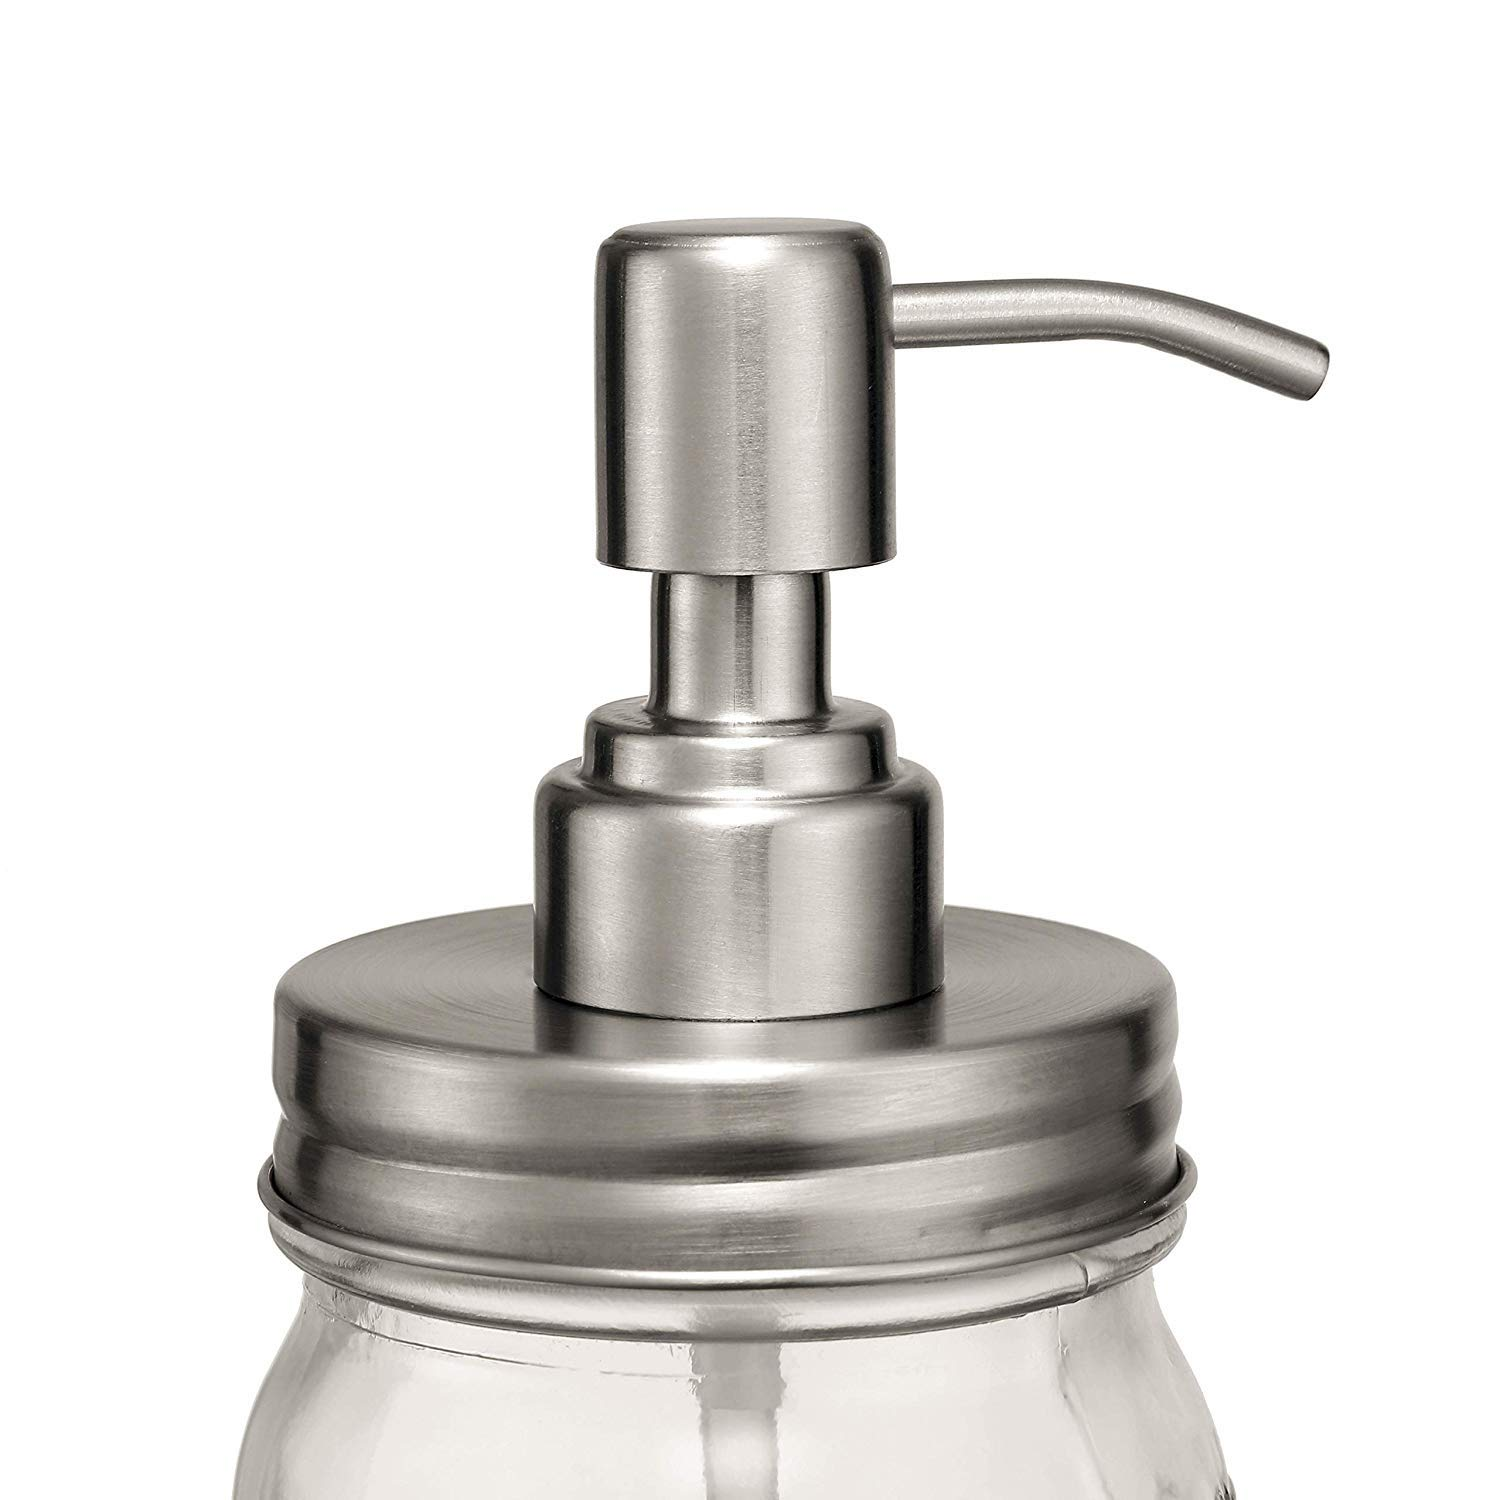 BTU Double Stainless Steel Soap Pump and Lotion Dispenser Lid,Replacement Rust Proof Soap and Lotion Dispenser Pump for Mason Jars or Other DIY Lotion Dispensers,2 in 1 Package (No Jars)